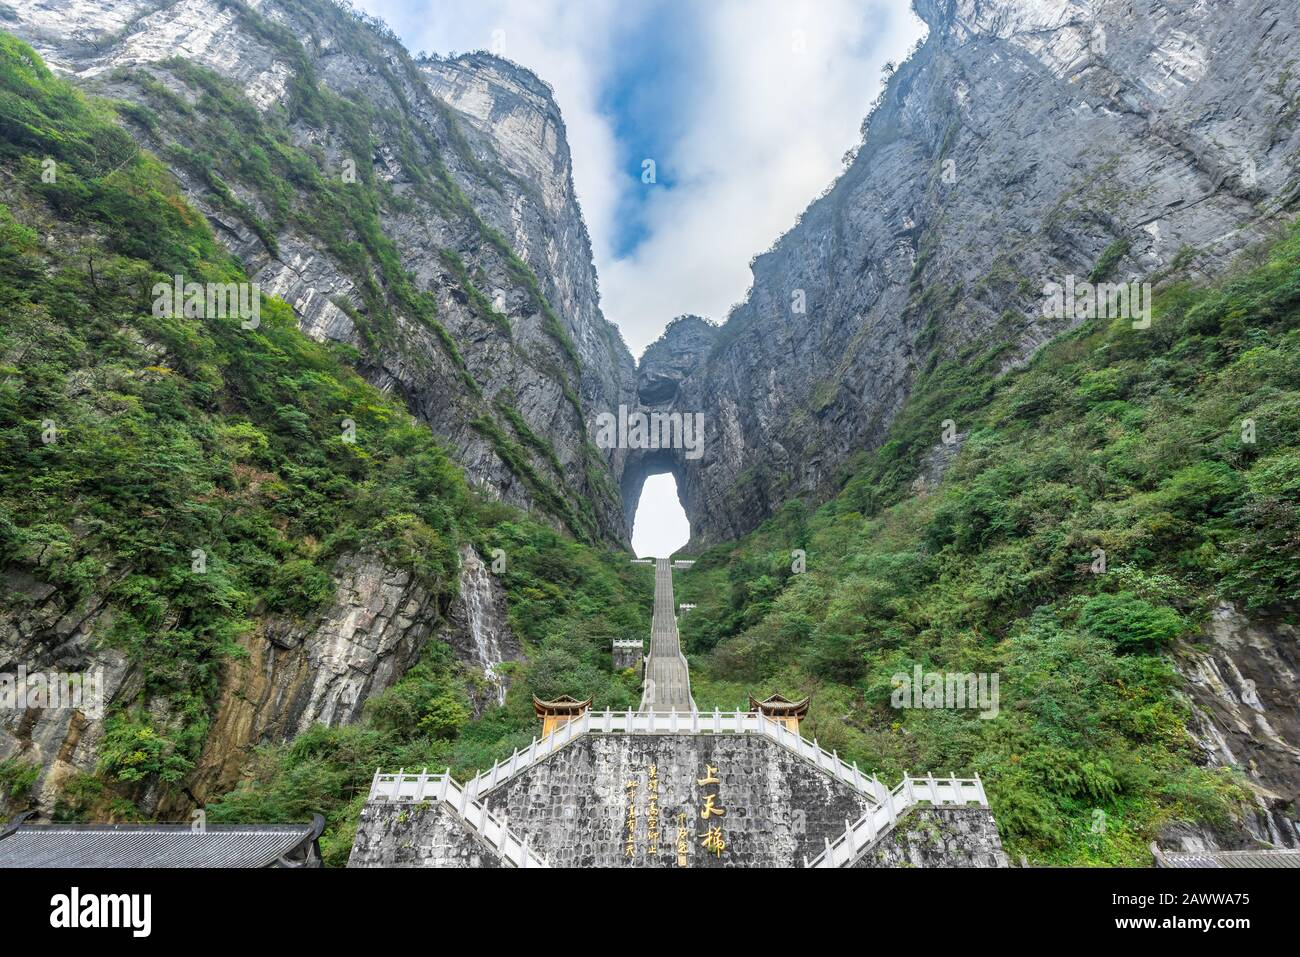 The Heaven's Gate of Tianmen Mountain National Park with 999 step stairway on a cloudy day with blue sky, Zhangjiajie, Changsha, Hunan, China Stock Photo